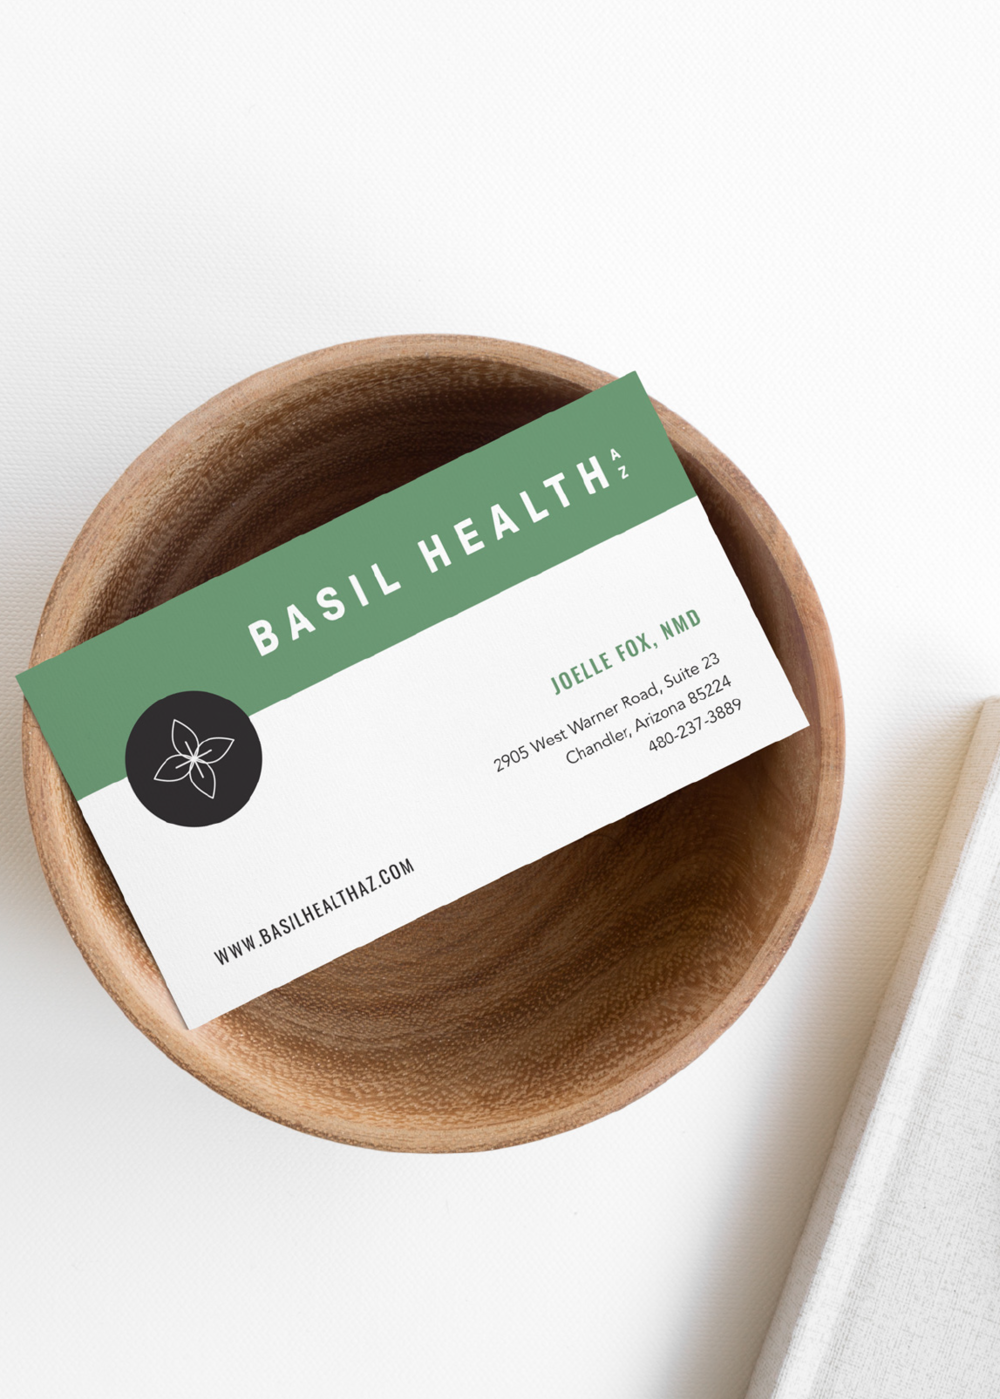 minimal branding design for naturopathic docto - made by nf.png